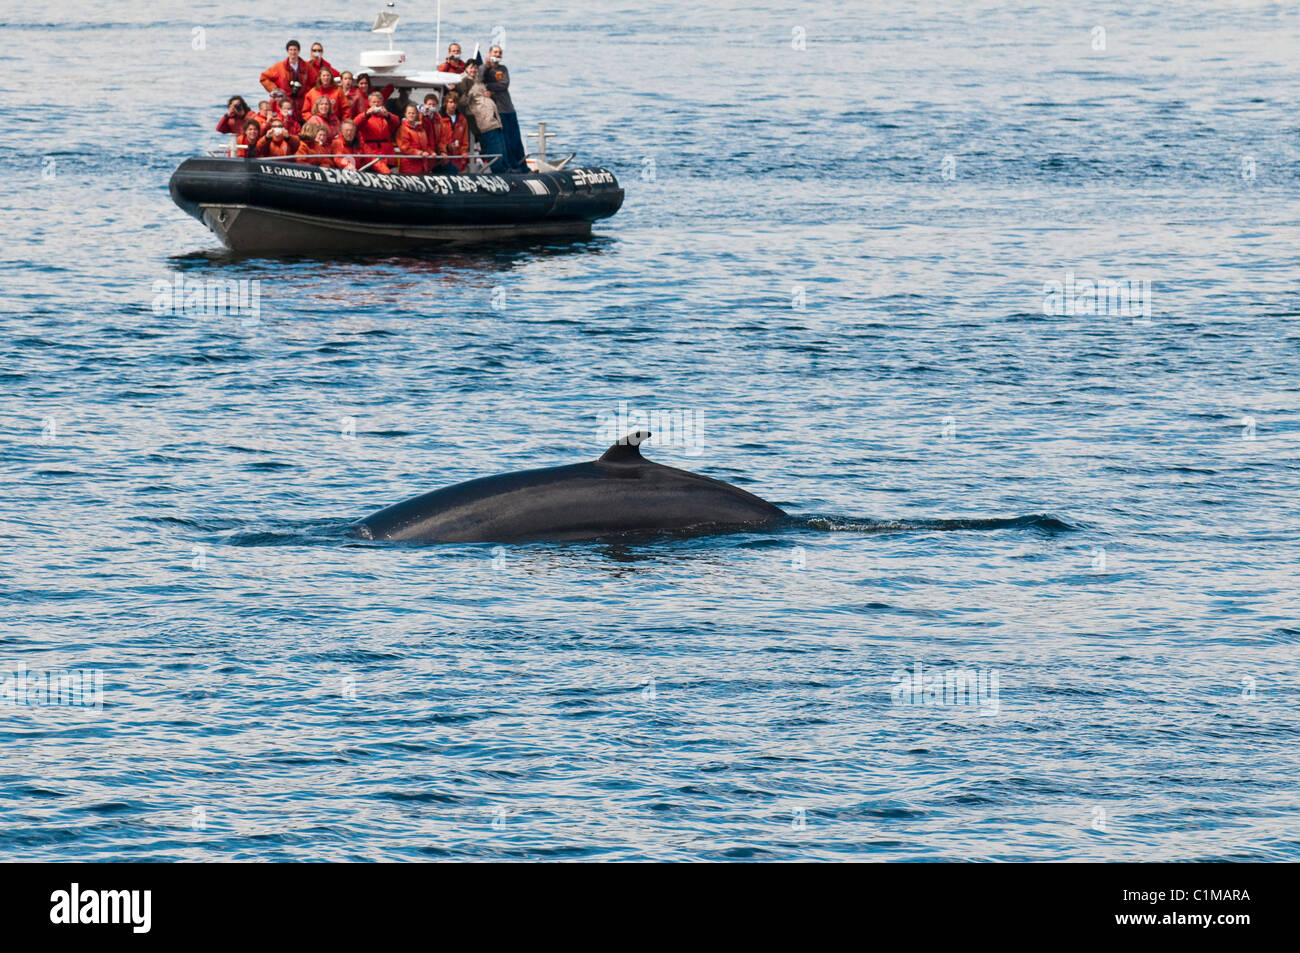 Whale watching near Tadoussac, Quebec, Canada. - Stock Image